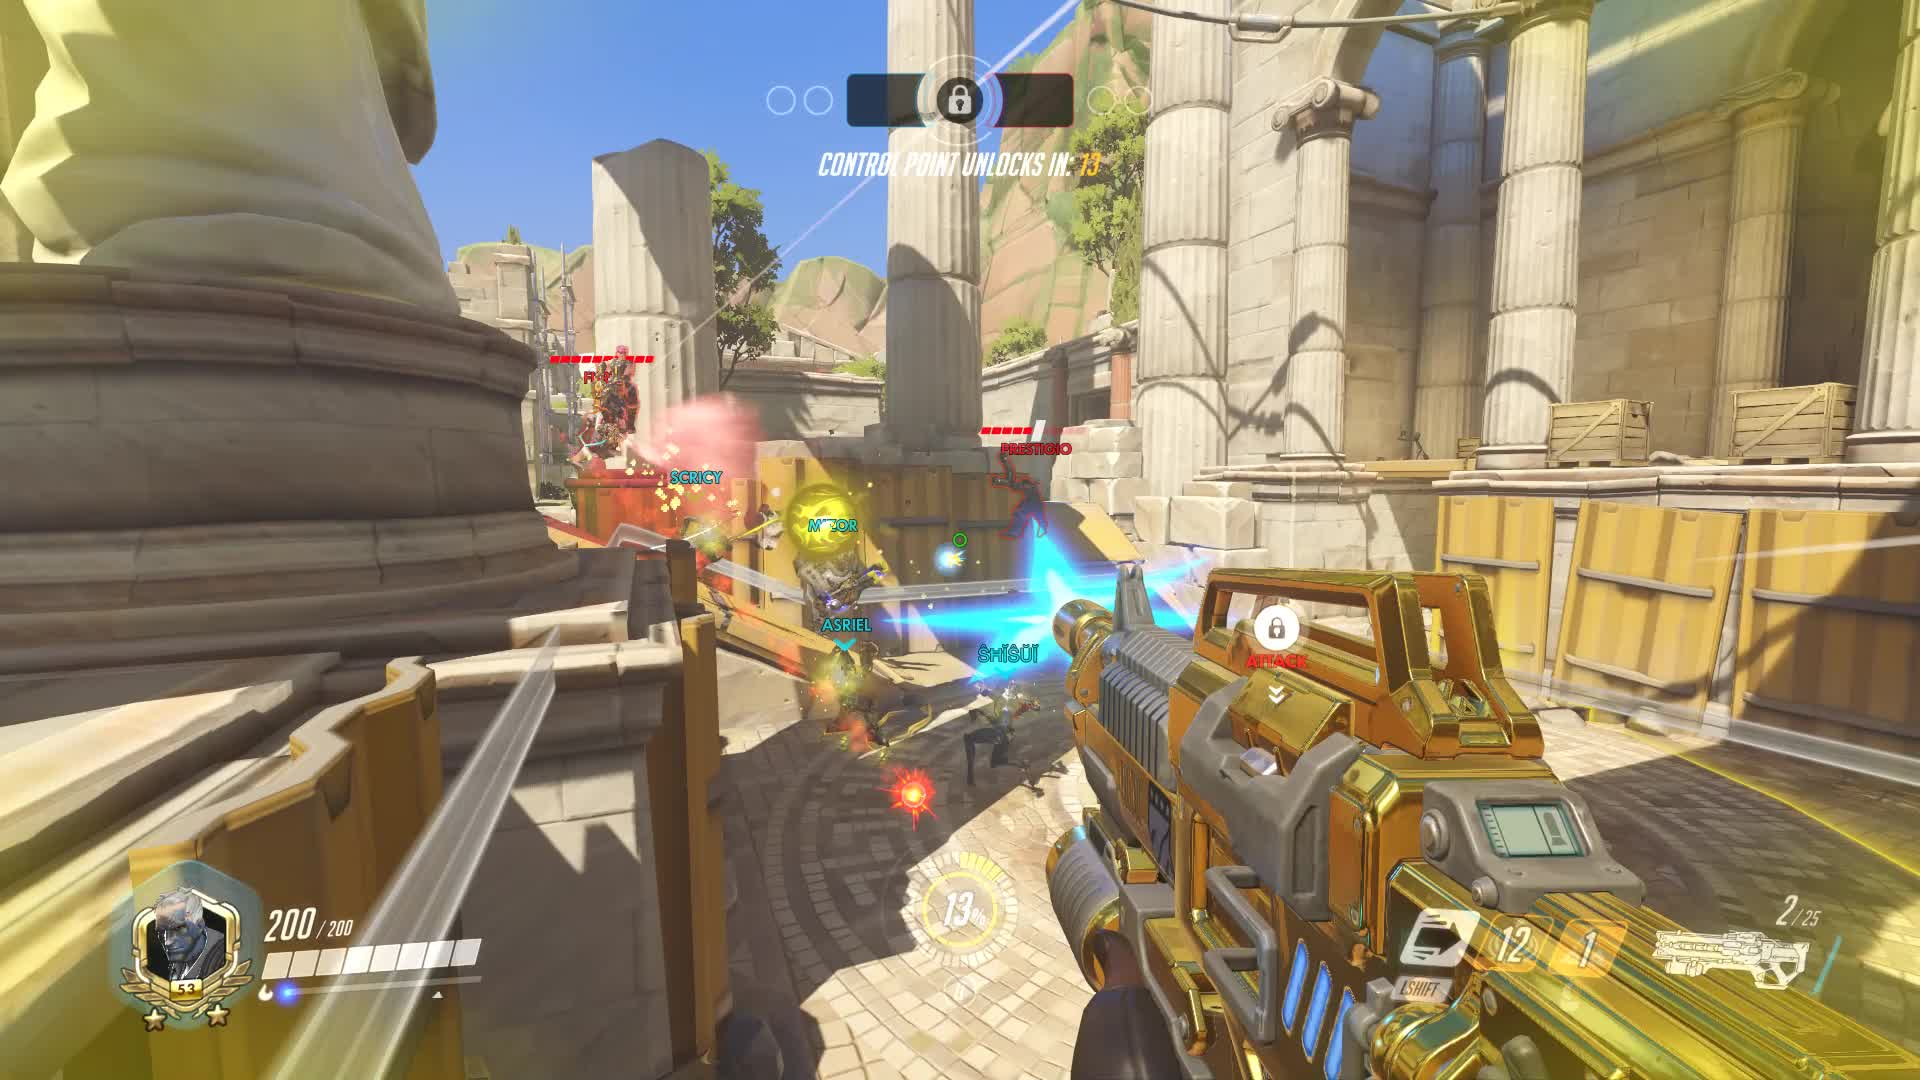 boop, helix, overwatch, soldier 76, Packs a punch GIFs